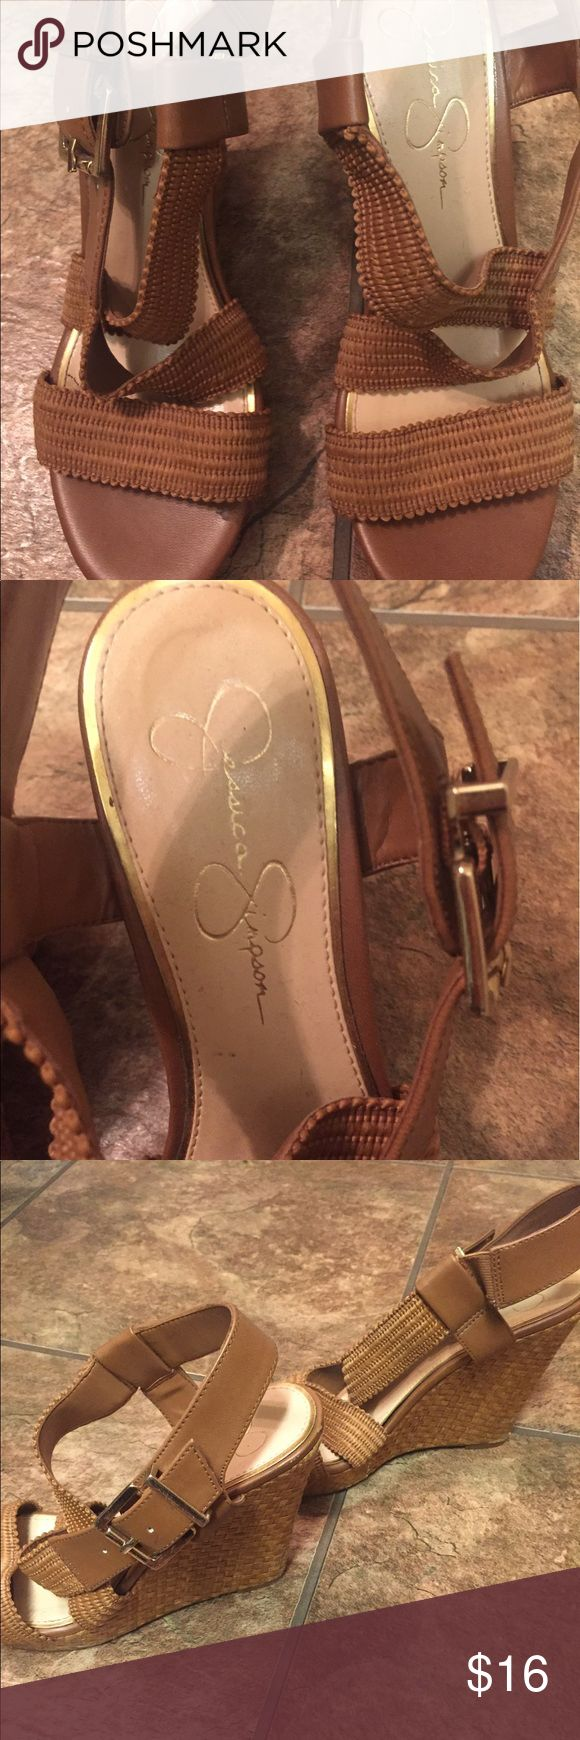 Jessica Simpson Wedges size 8 Good used condition, tan/brown in color.  Woven detail on sides is super cute!!!! 💃 Jessica Simpson Shoes Wedges